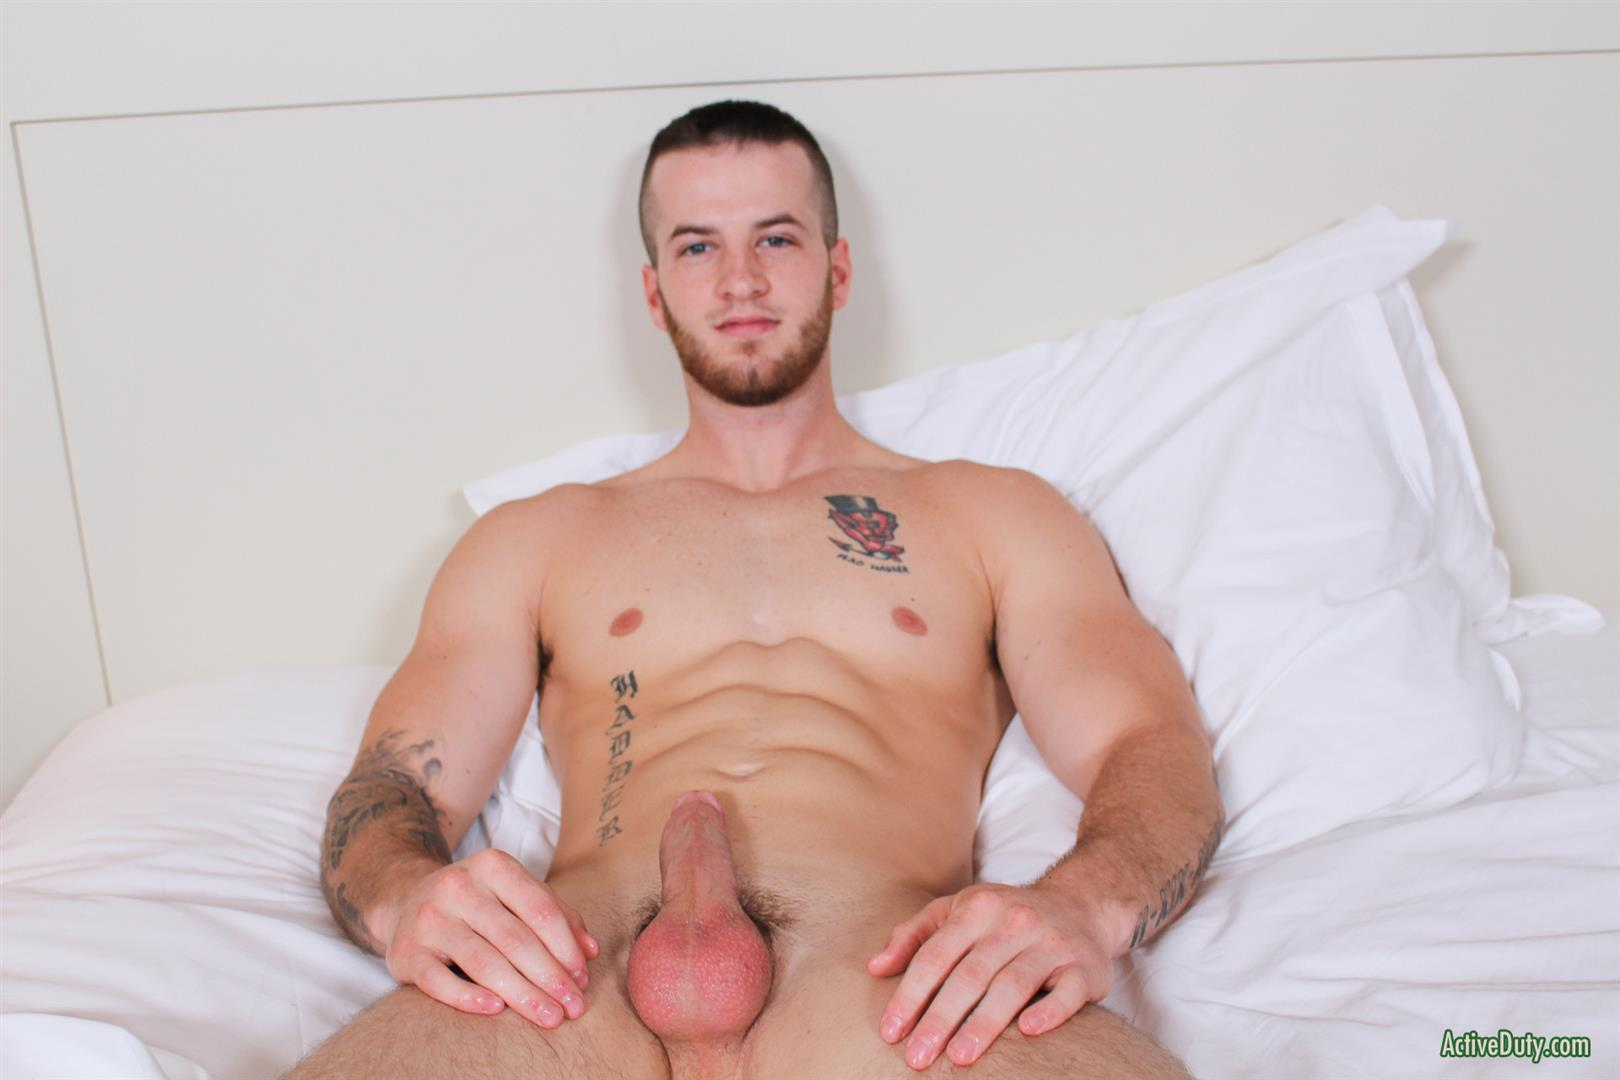 Active Duty Quentin Muscular Naked Army Soldier Masturbating Big Cock Amateur Gay Porn 12 Straight Army Private Stokes His Big Cock On Video For The First Time